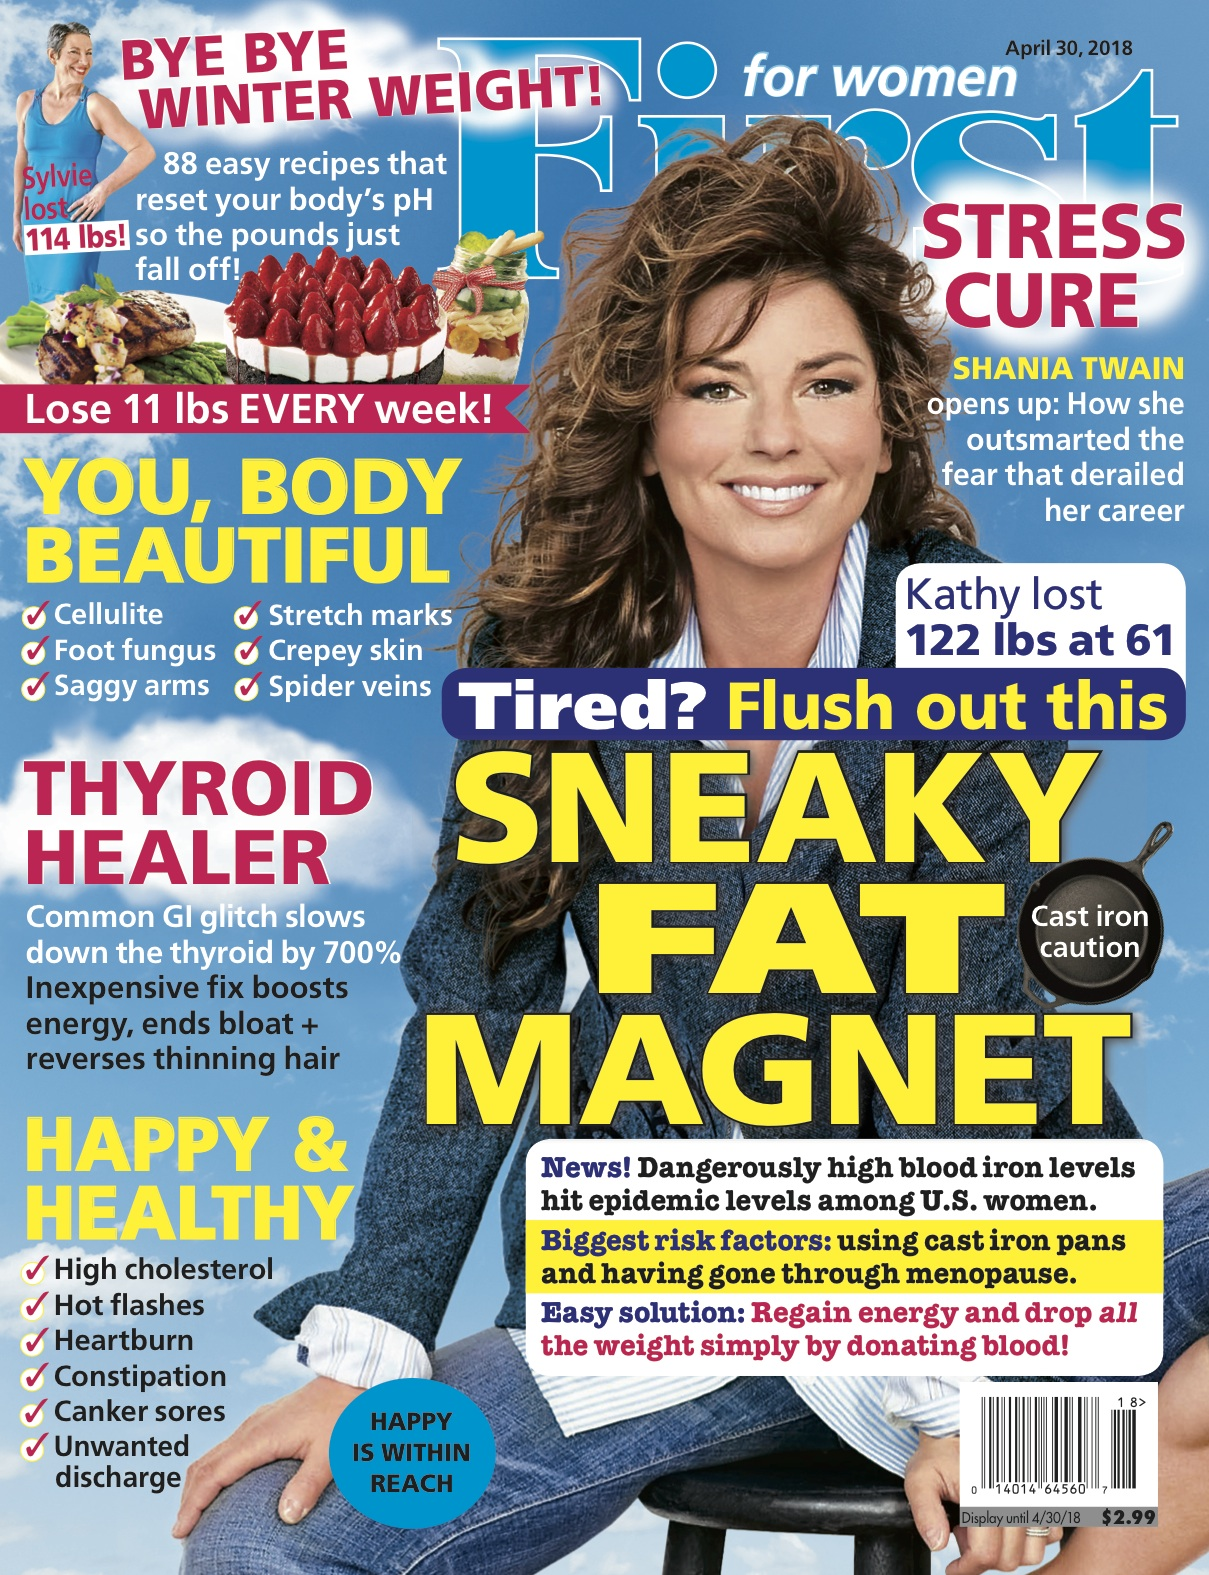 FFW Cover Image Press Release Shania Twain